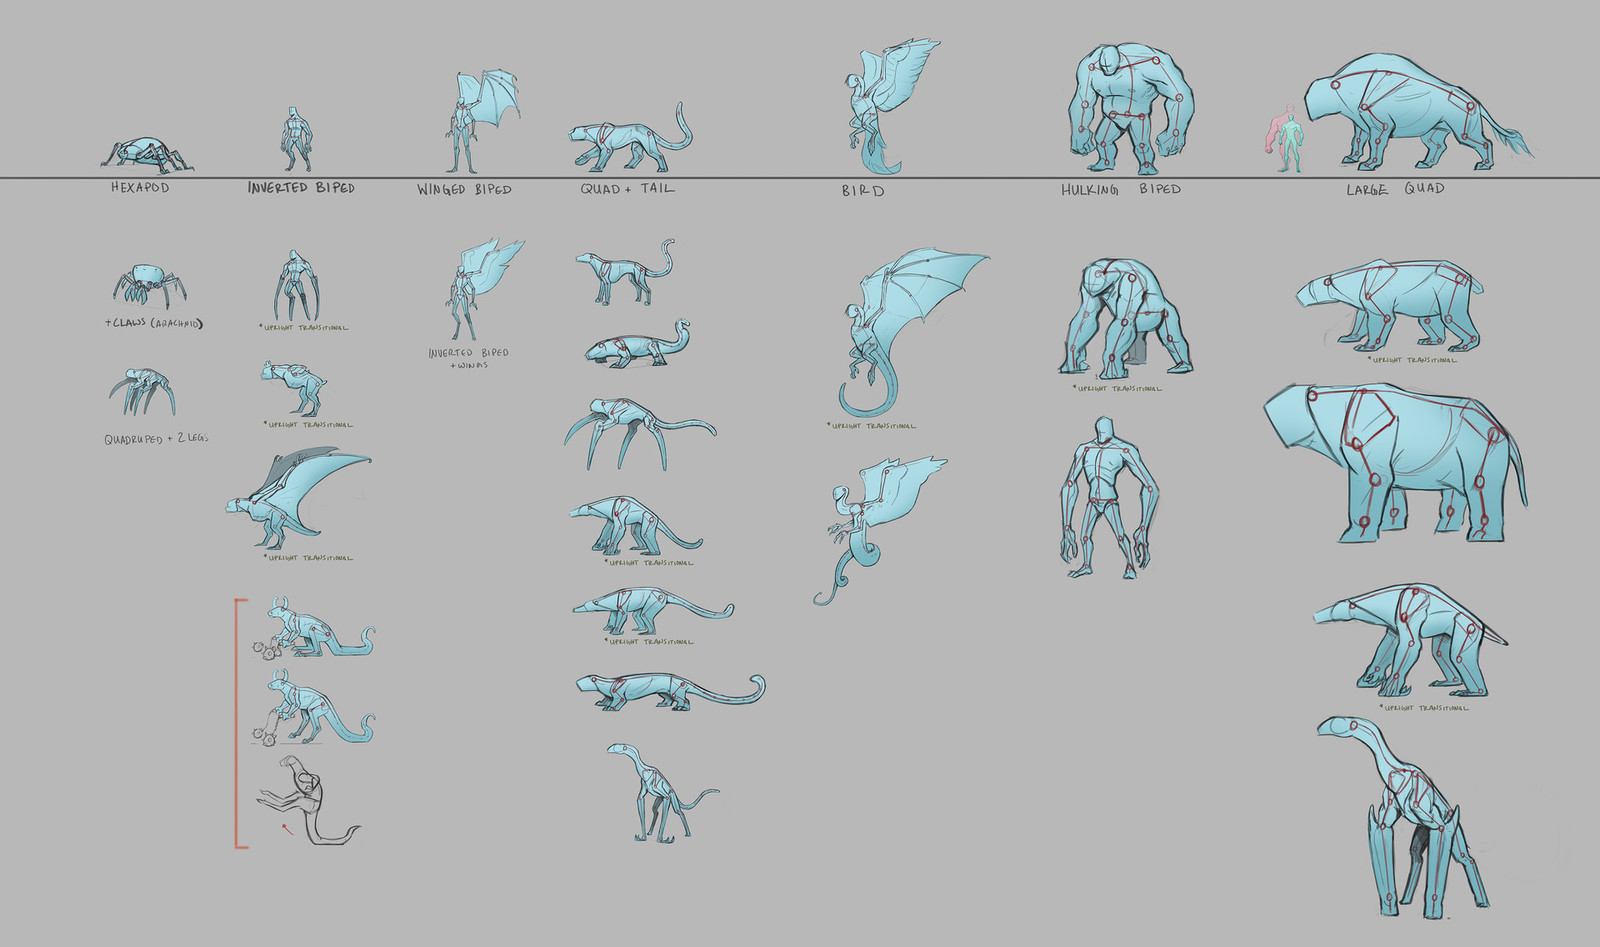 We wanted to maximize the monster rigs by fitting each with a basic body shape. This was a general exploration of different baselines that explored which would offer the most bang for buck. The weirder ones were nixed early on.